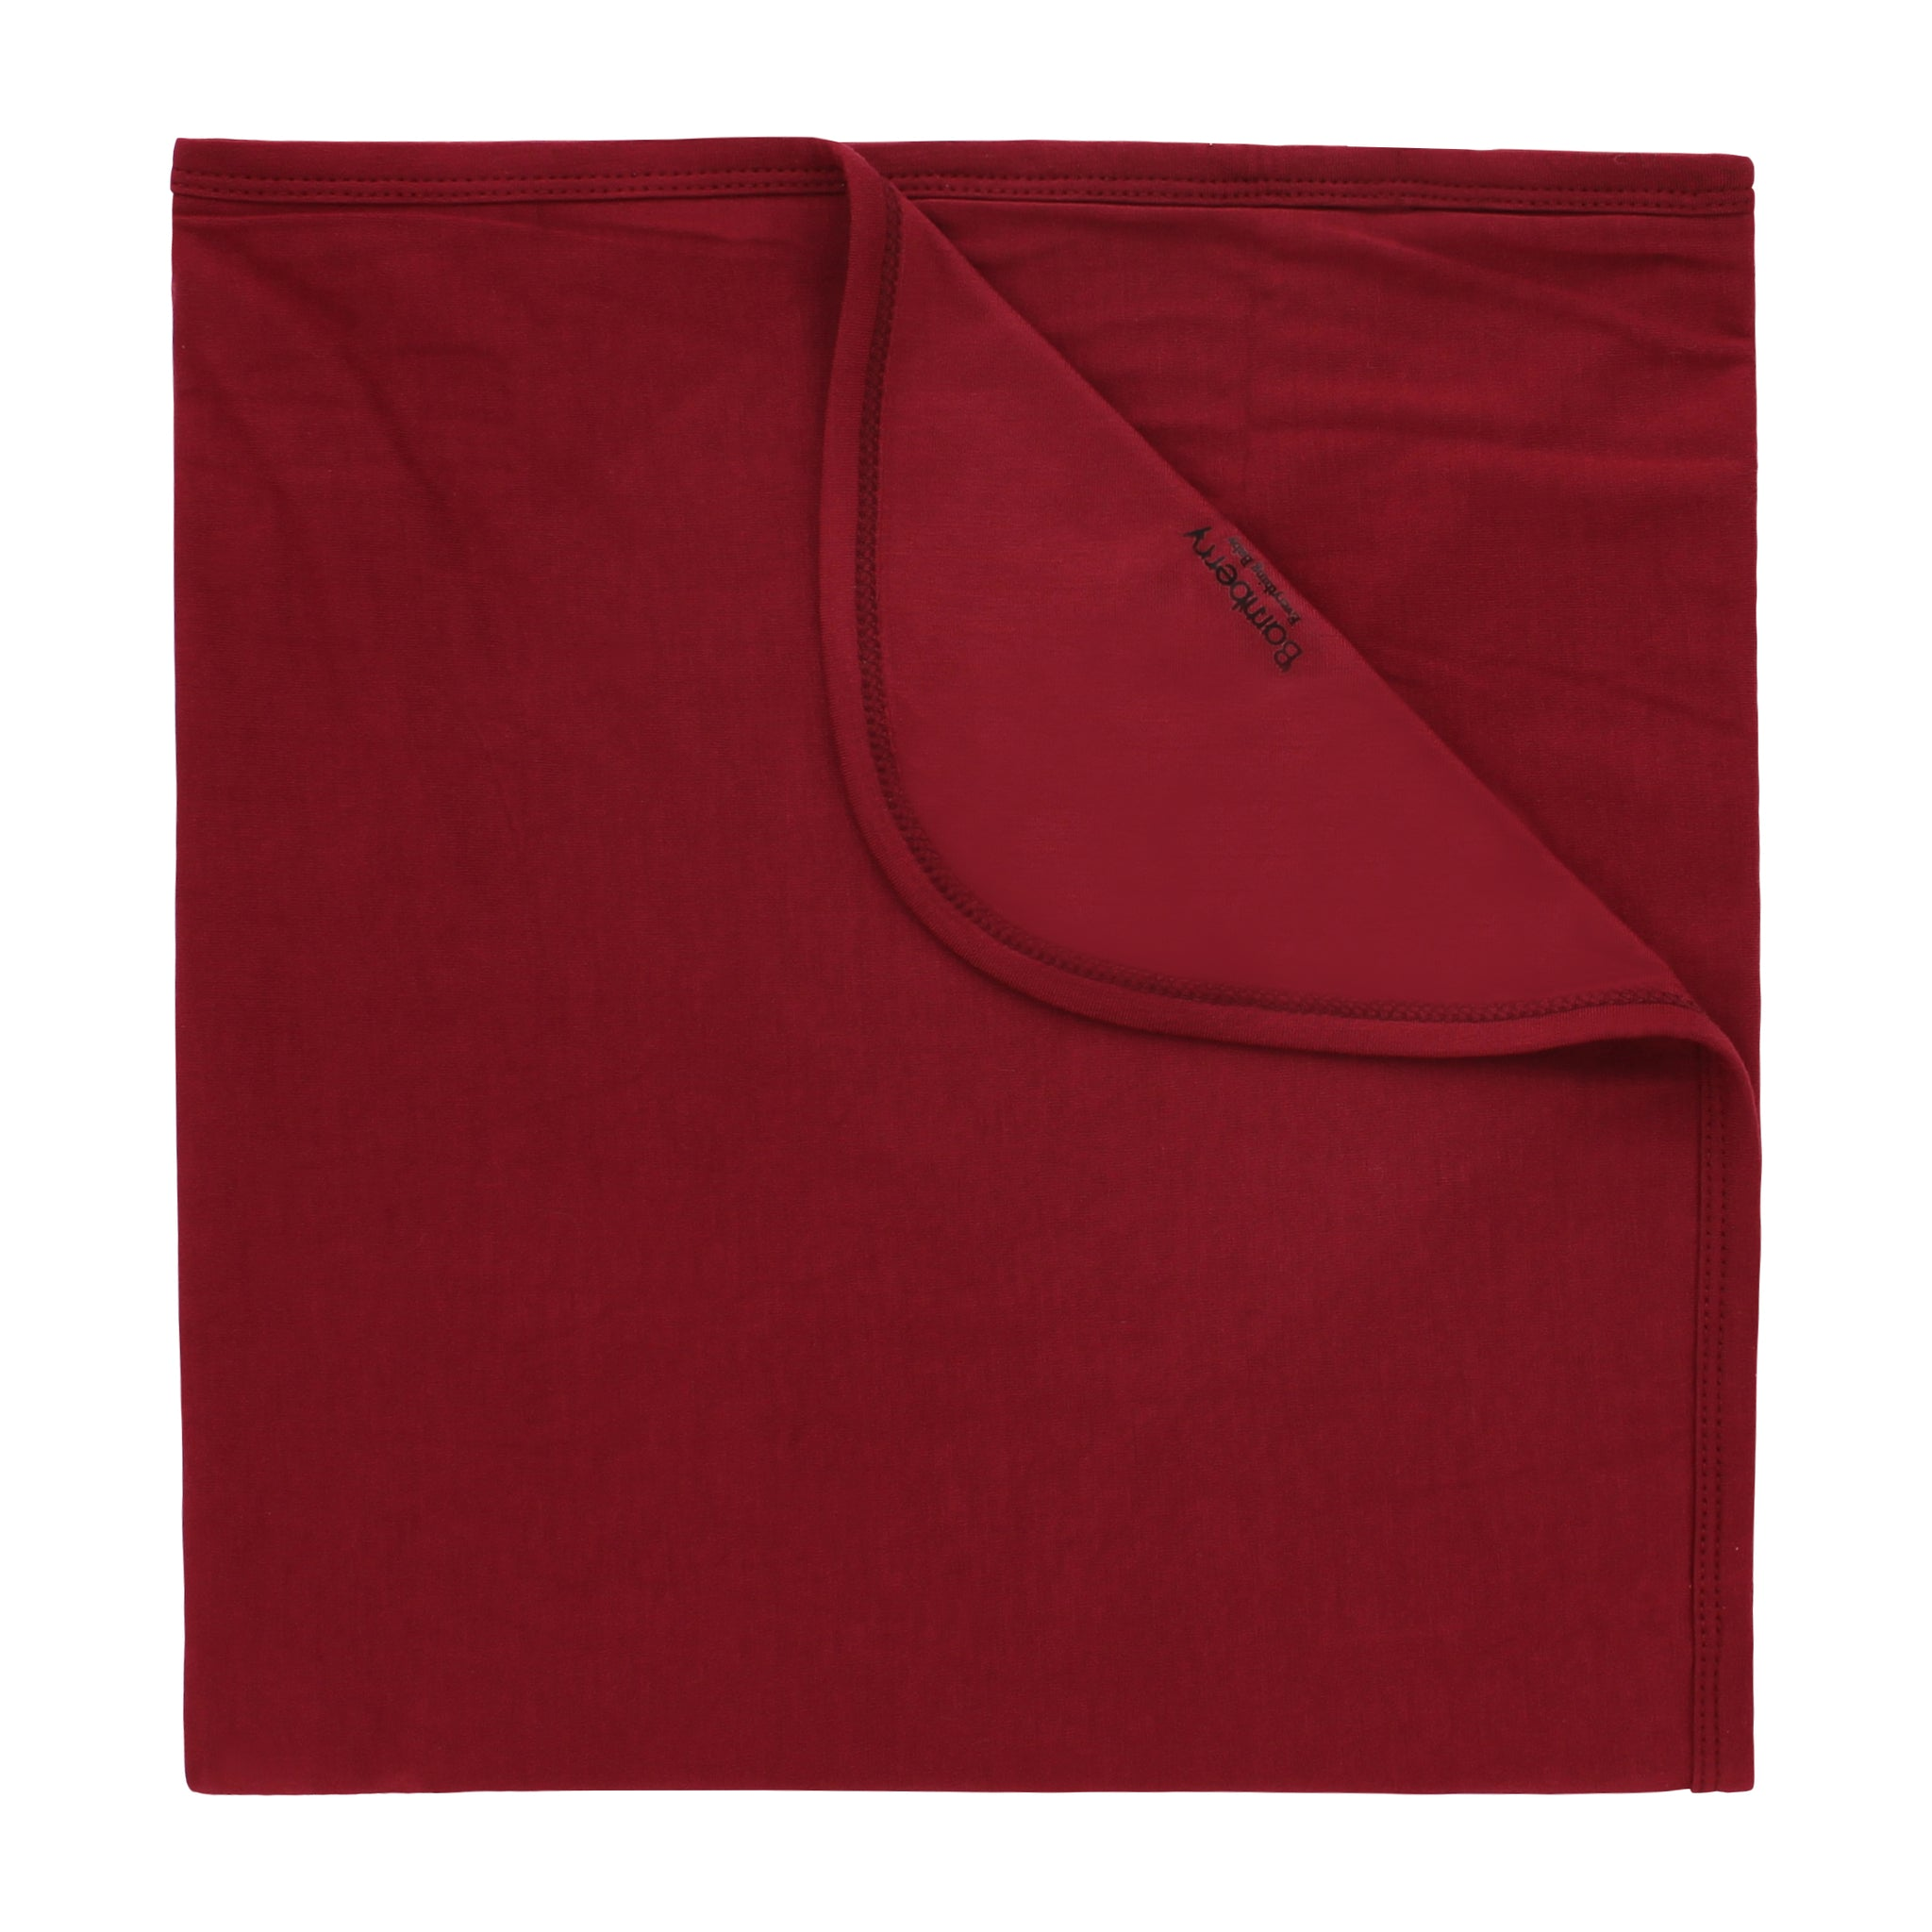 Bamboo Stretch Swaddle, Berry Red